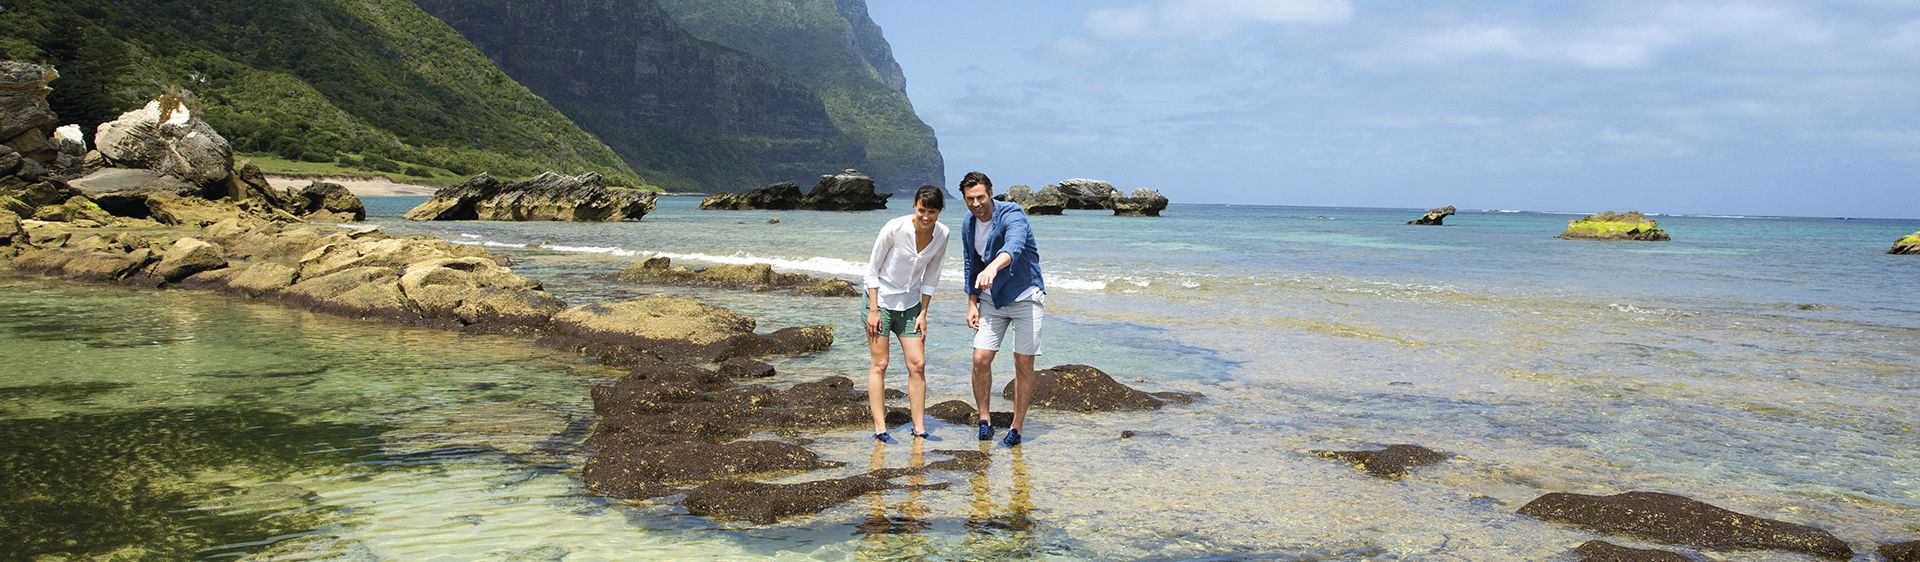 Couple walking along the reef exploring marine life at Johnsons Beach, Lord Howe Island.